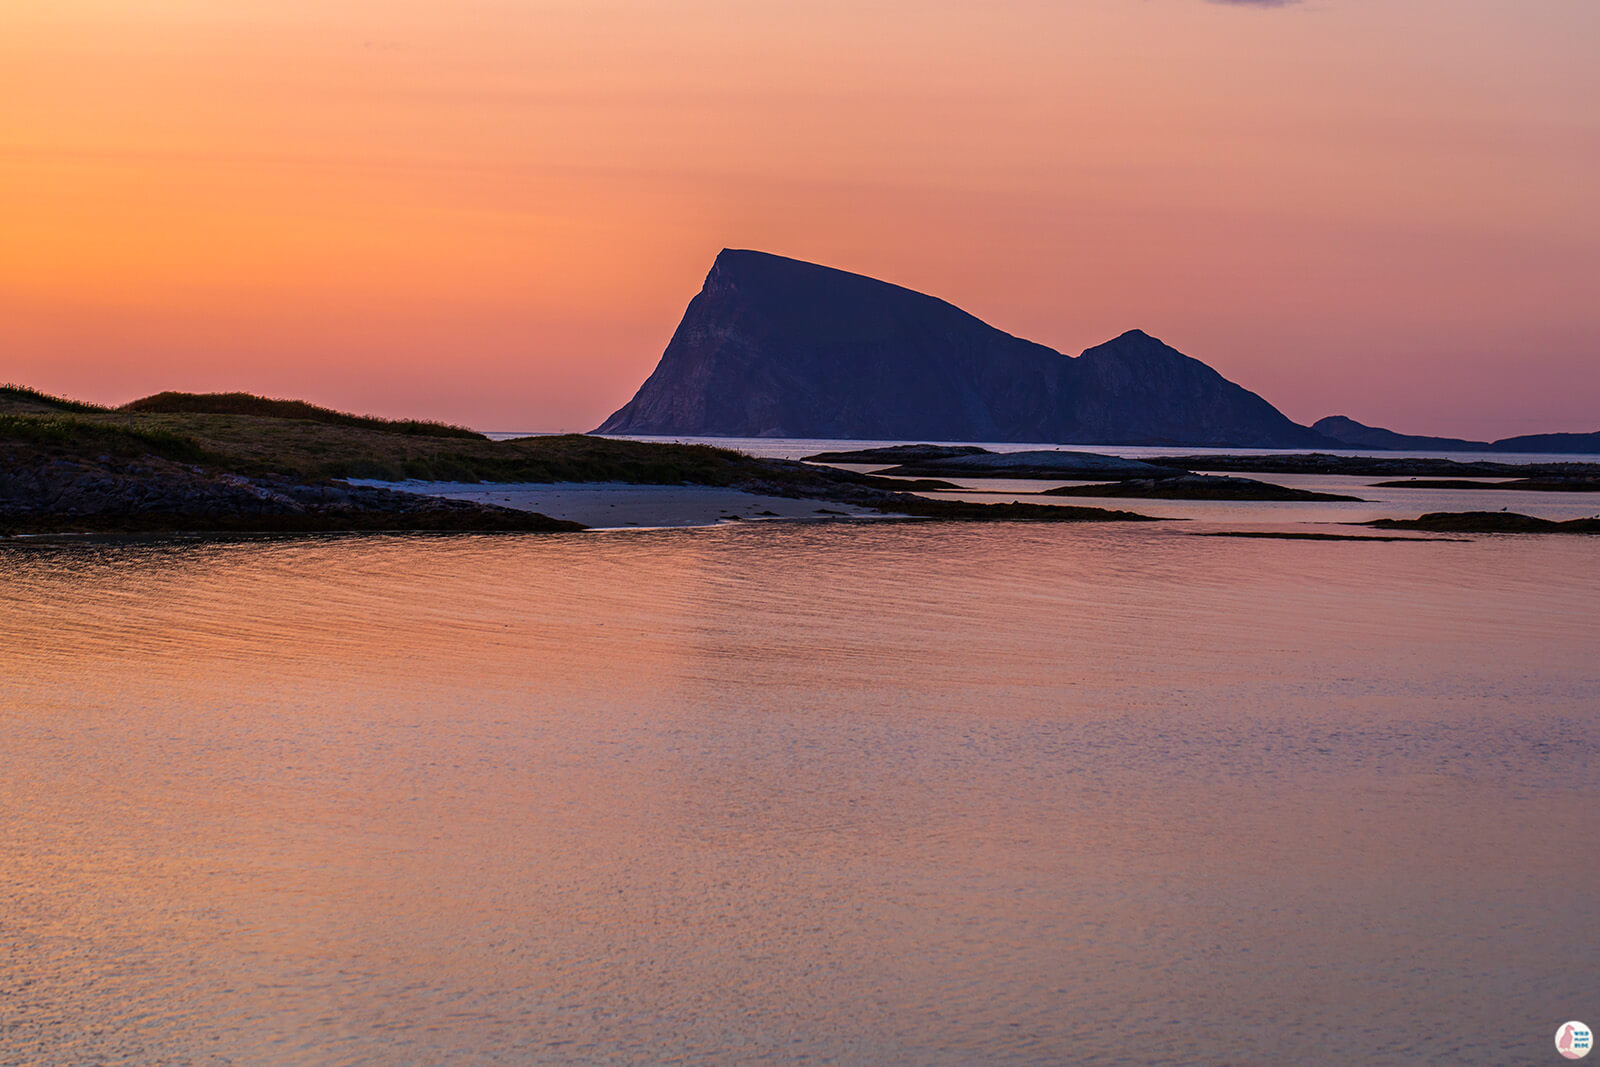 Sunset view from Sommarøy fishing village, Troms, Northern Norway